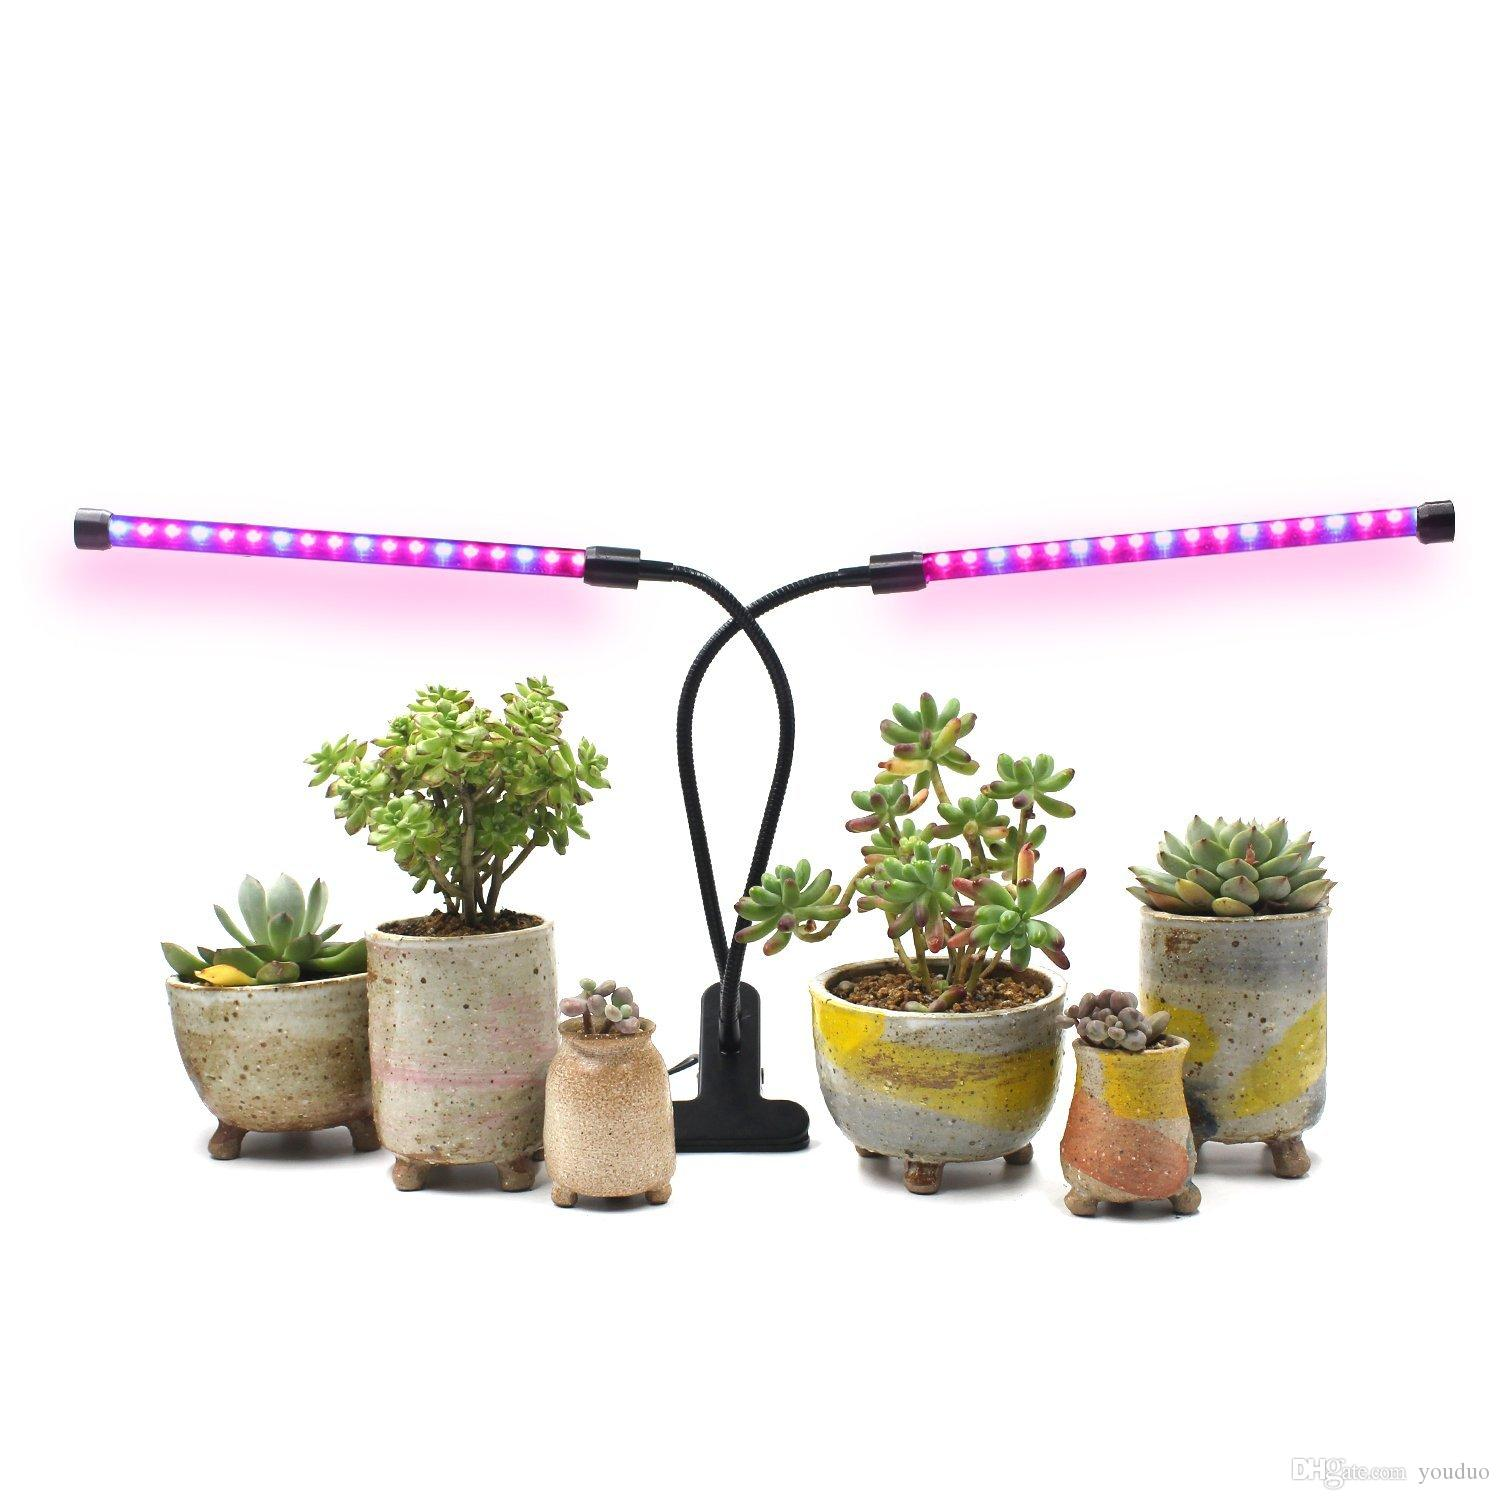 too wholesale light plant rant digging grows tropical i totally small you led can grow am lights herbs plants this and lighting best for indoor garden gardeningenabstand splendid